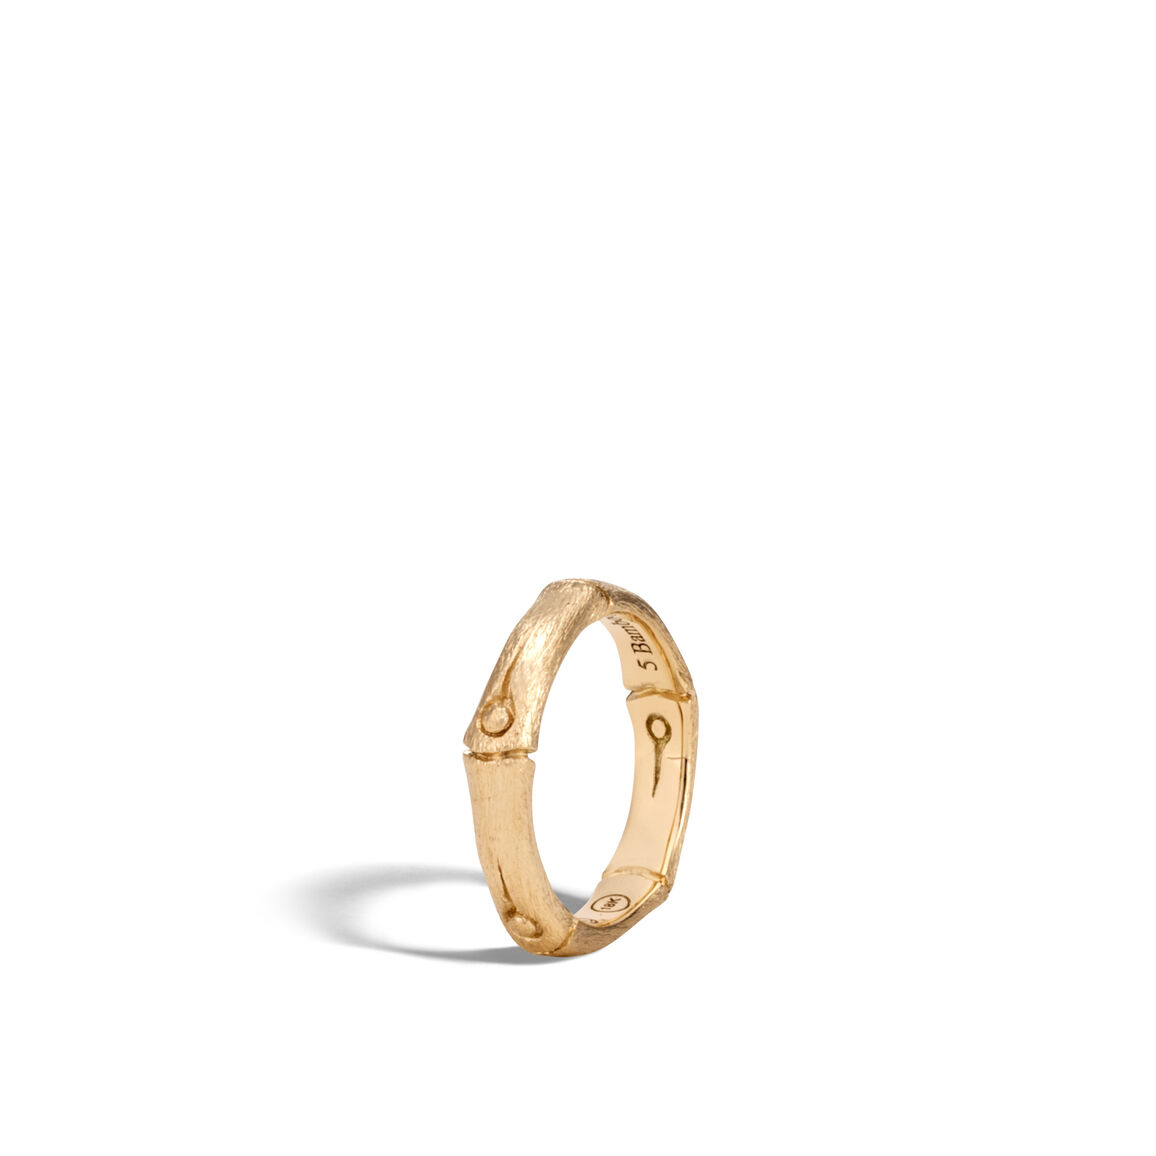 Bamboo 4MM Band Ring in Brushed 18K Gold